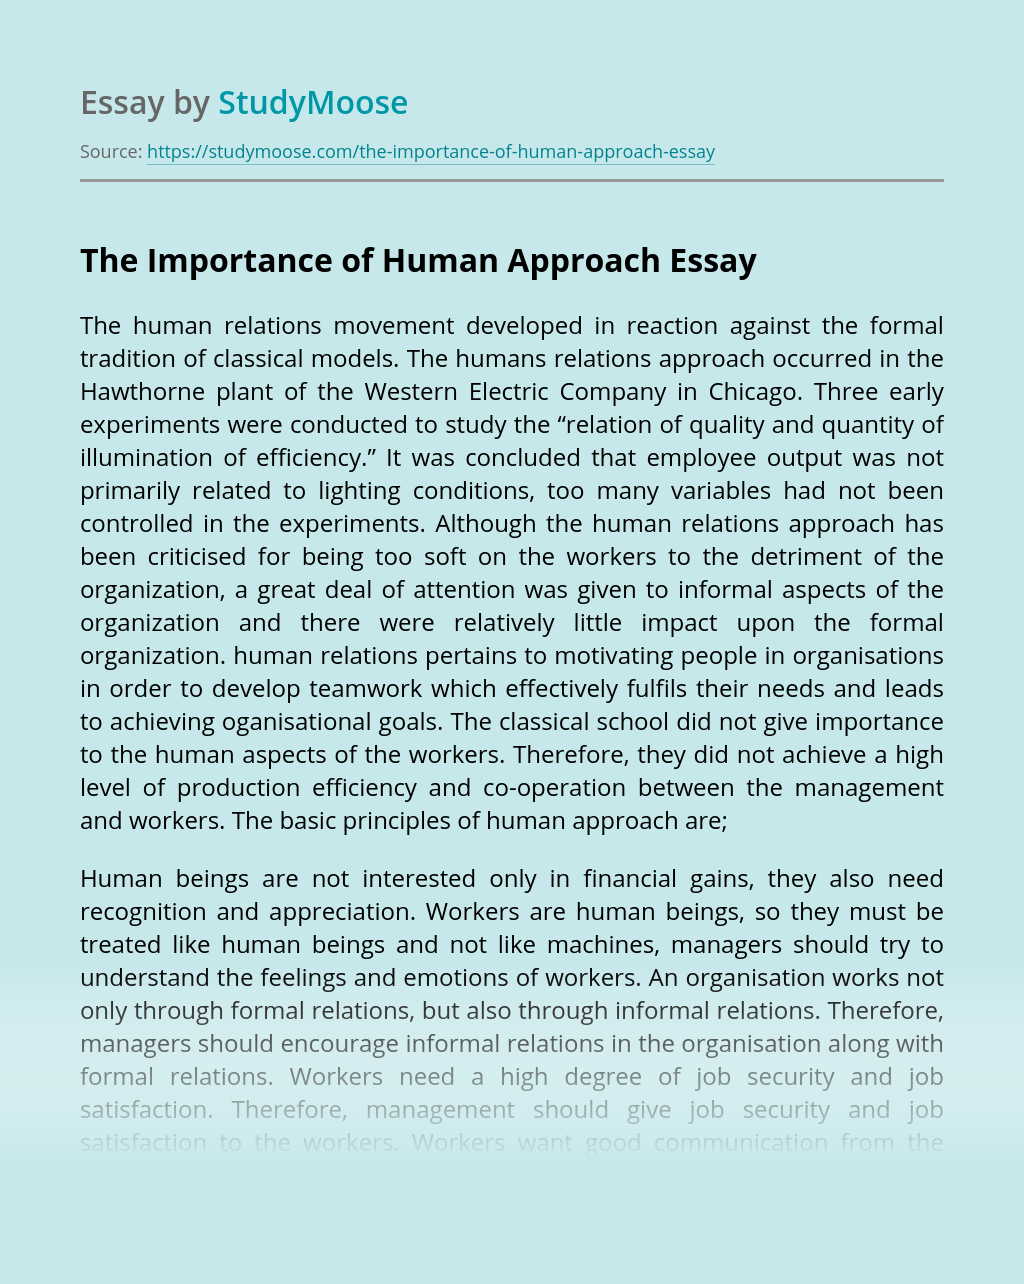 The Importance of Human Approach